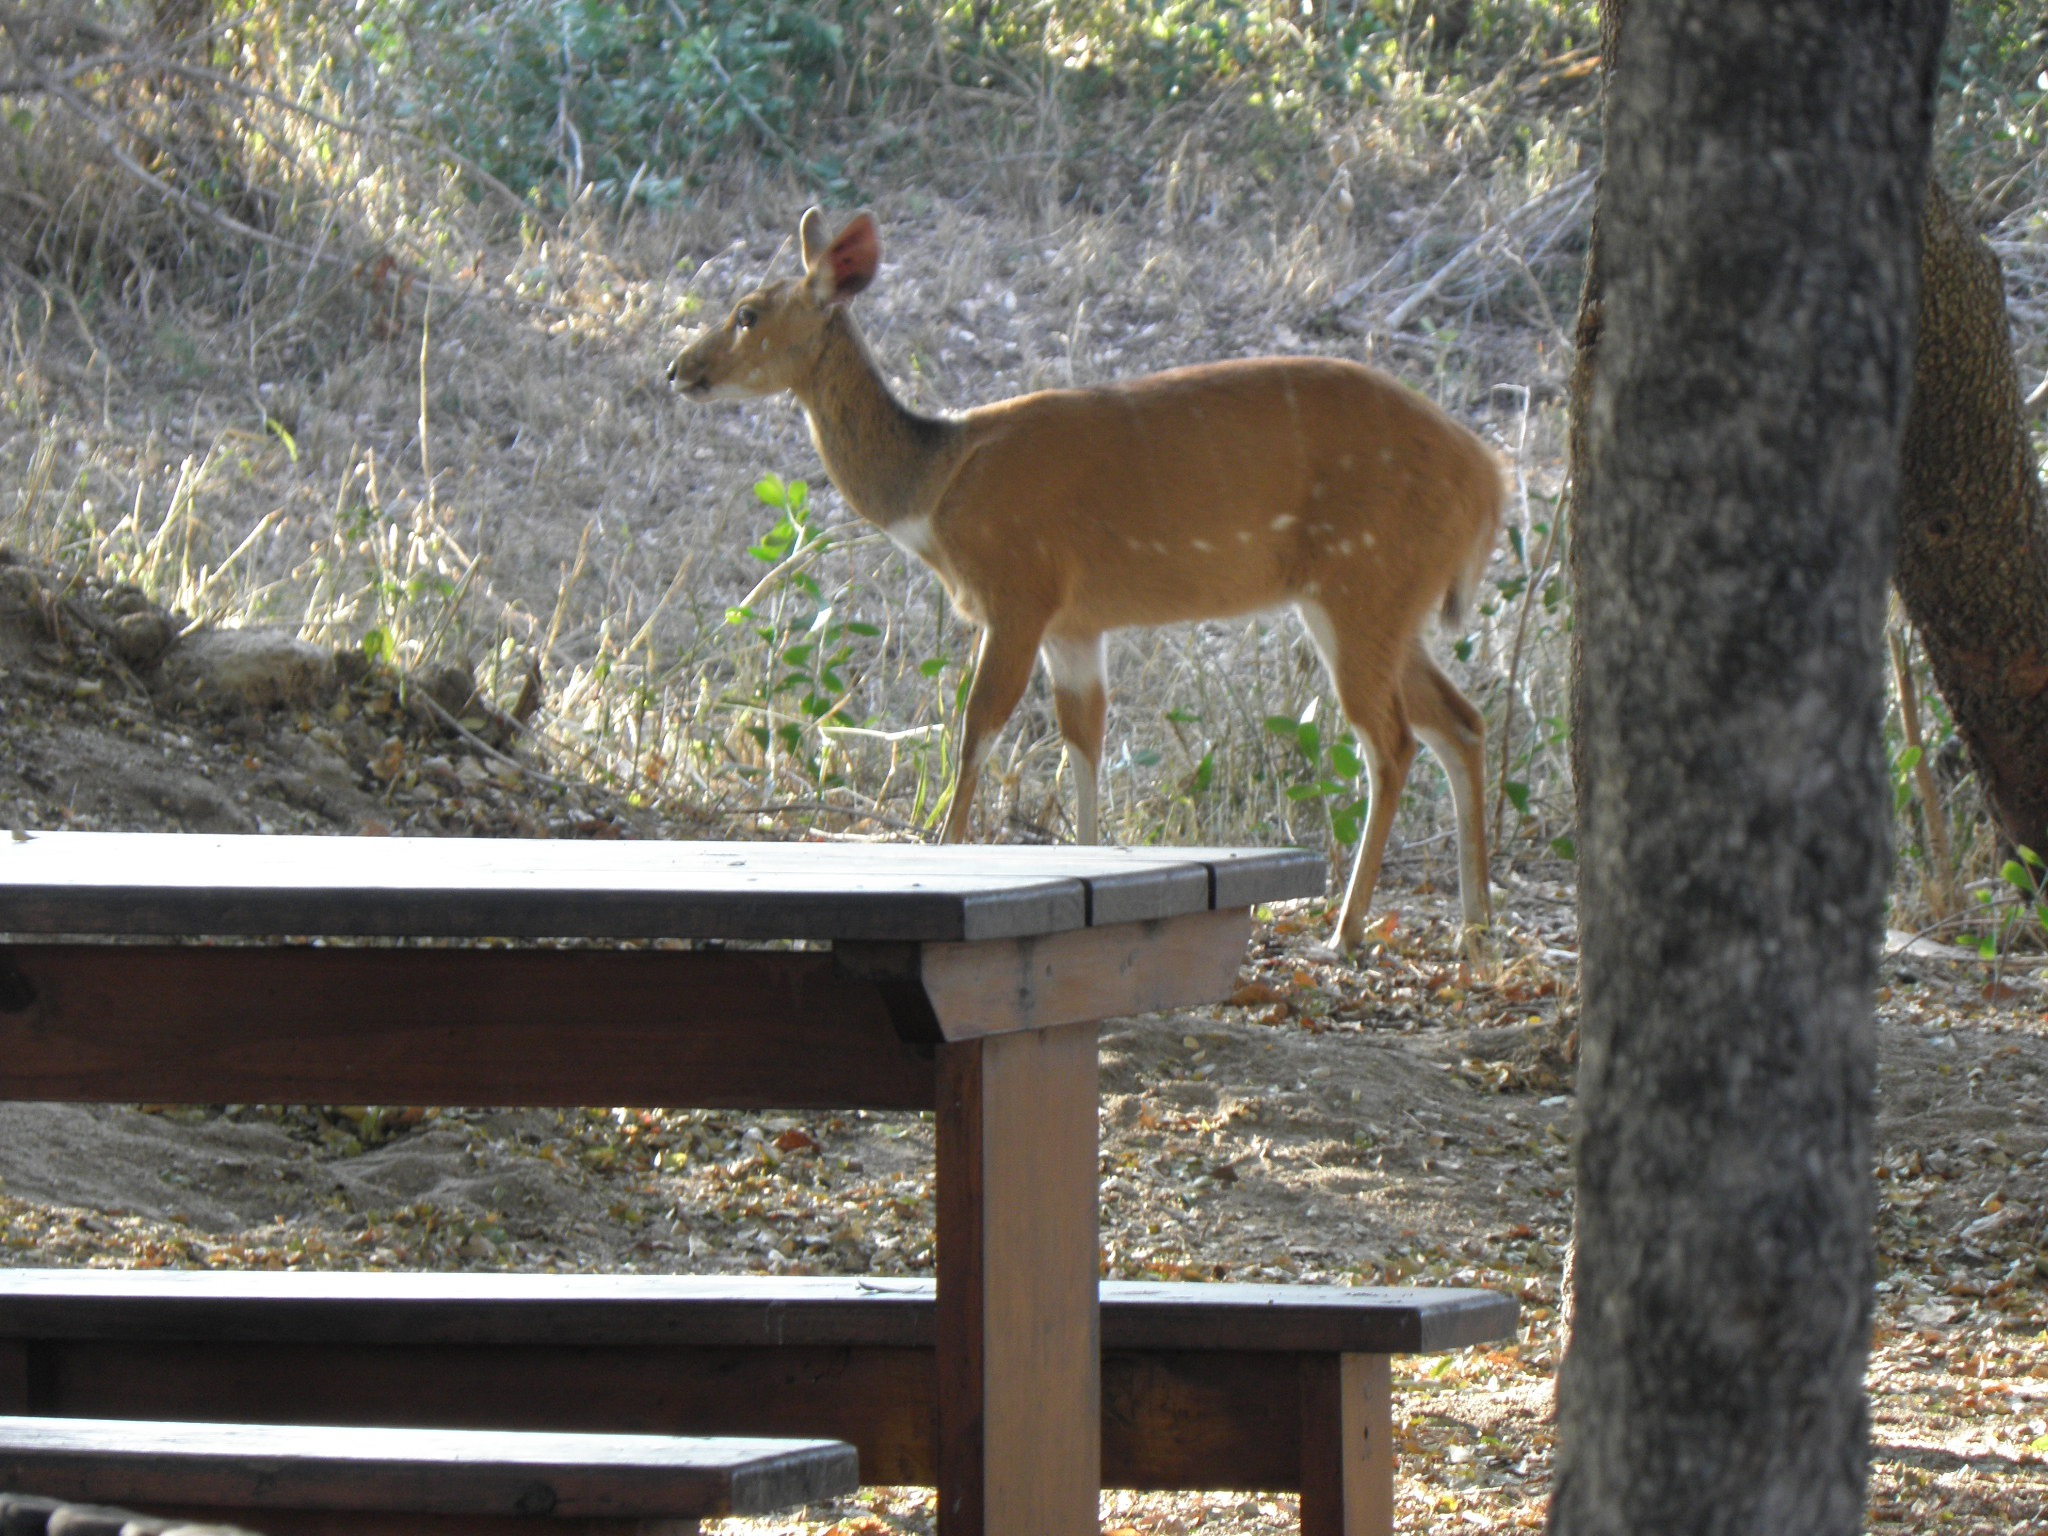 A bushbuck was wandering around the picnic area at Asfaal. I was told an elephant wandered in one day!